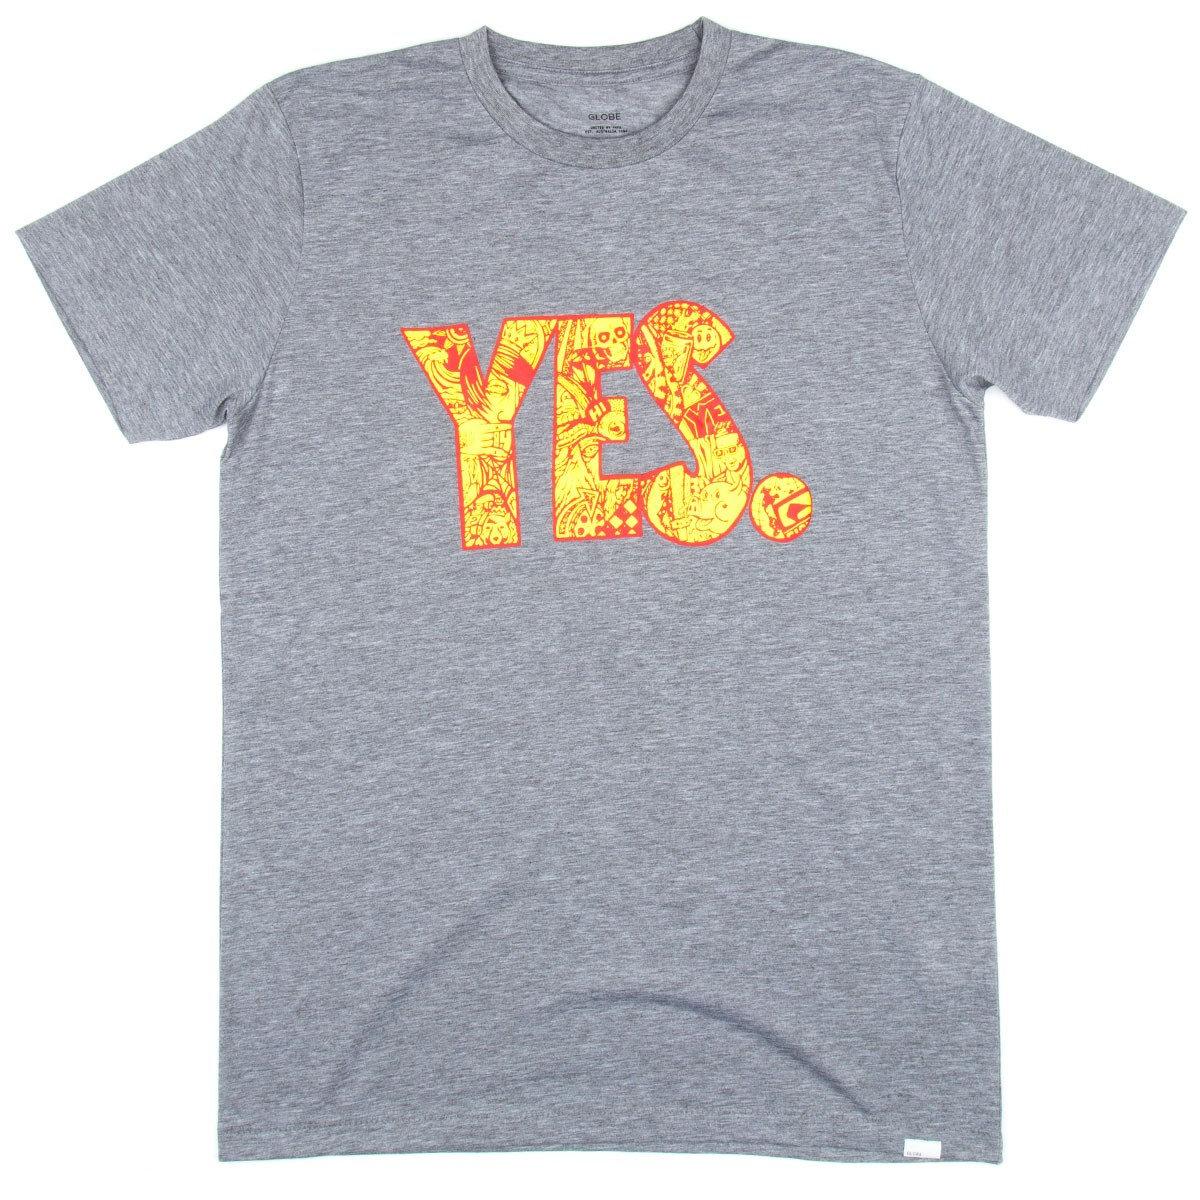 Globe Yes T-Shirt - Grey